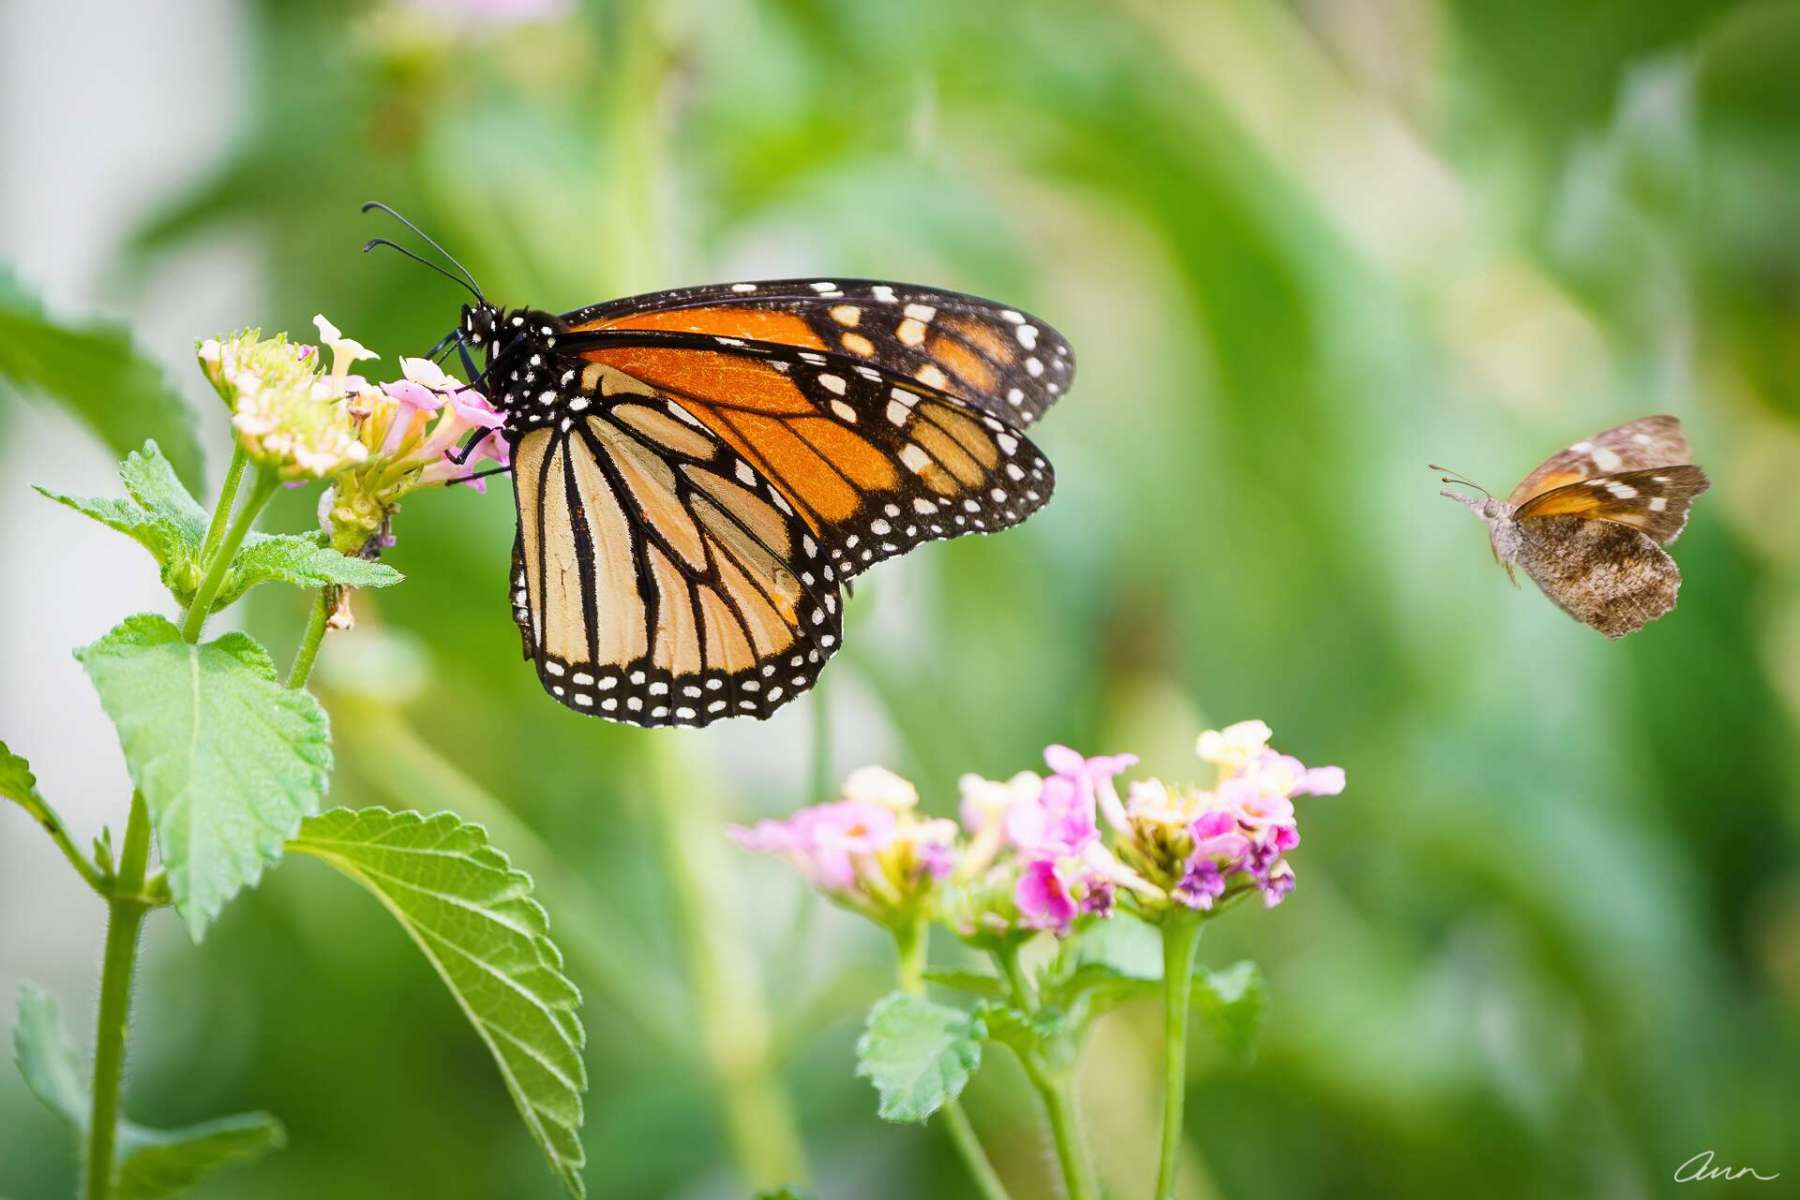 A cute little American Snout butterfly is like a Court Jester to the royalty of the Monarch butterfly.